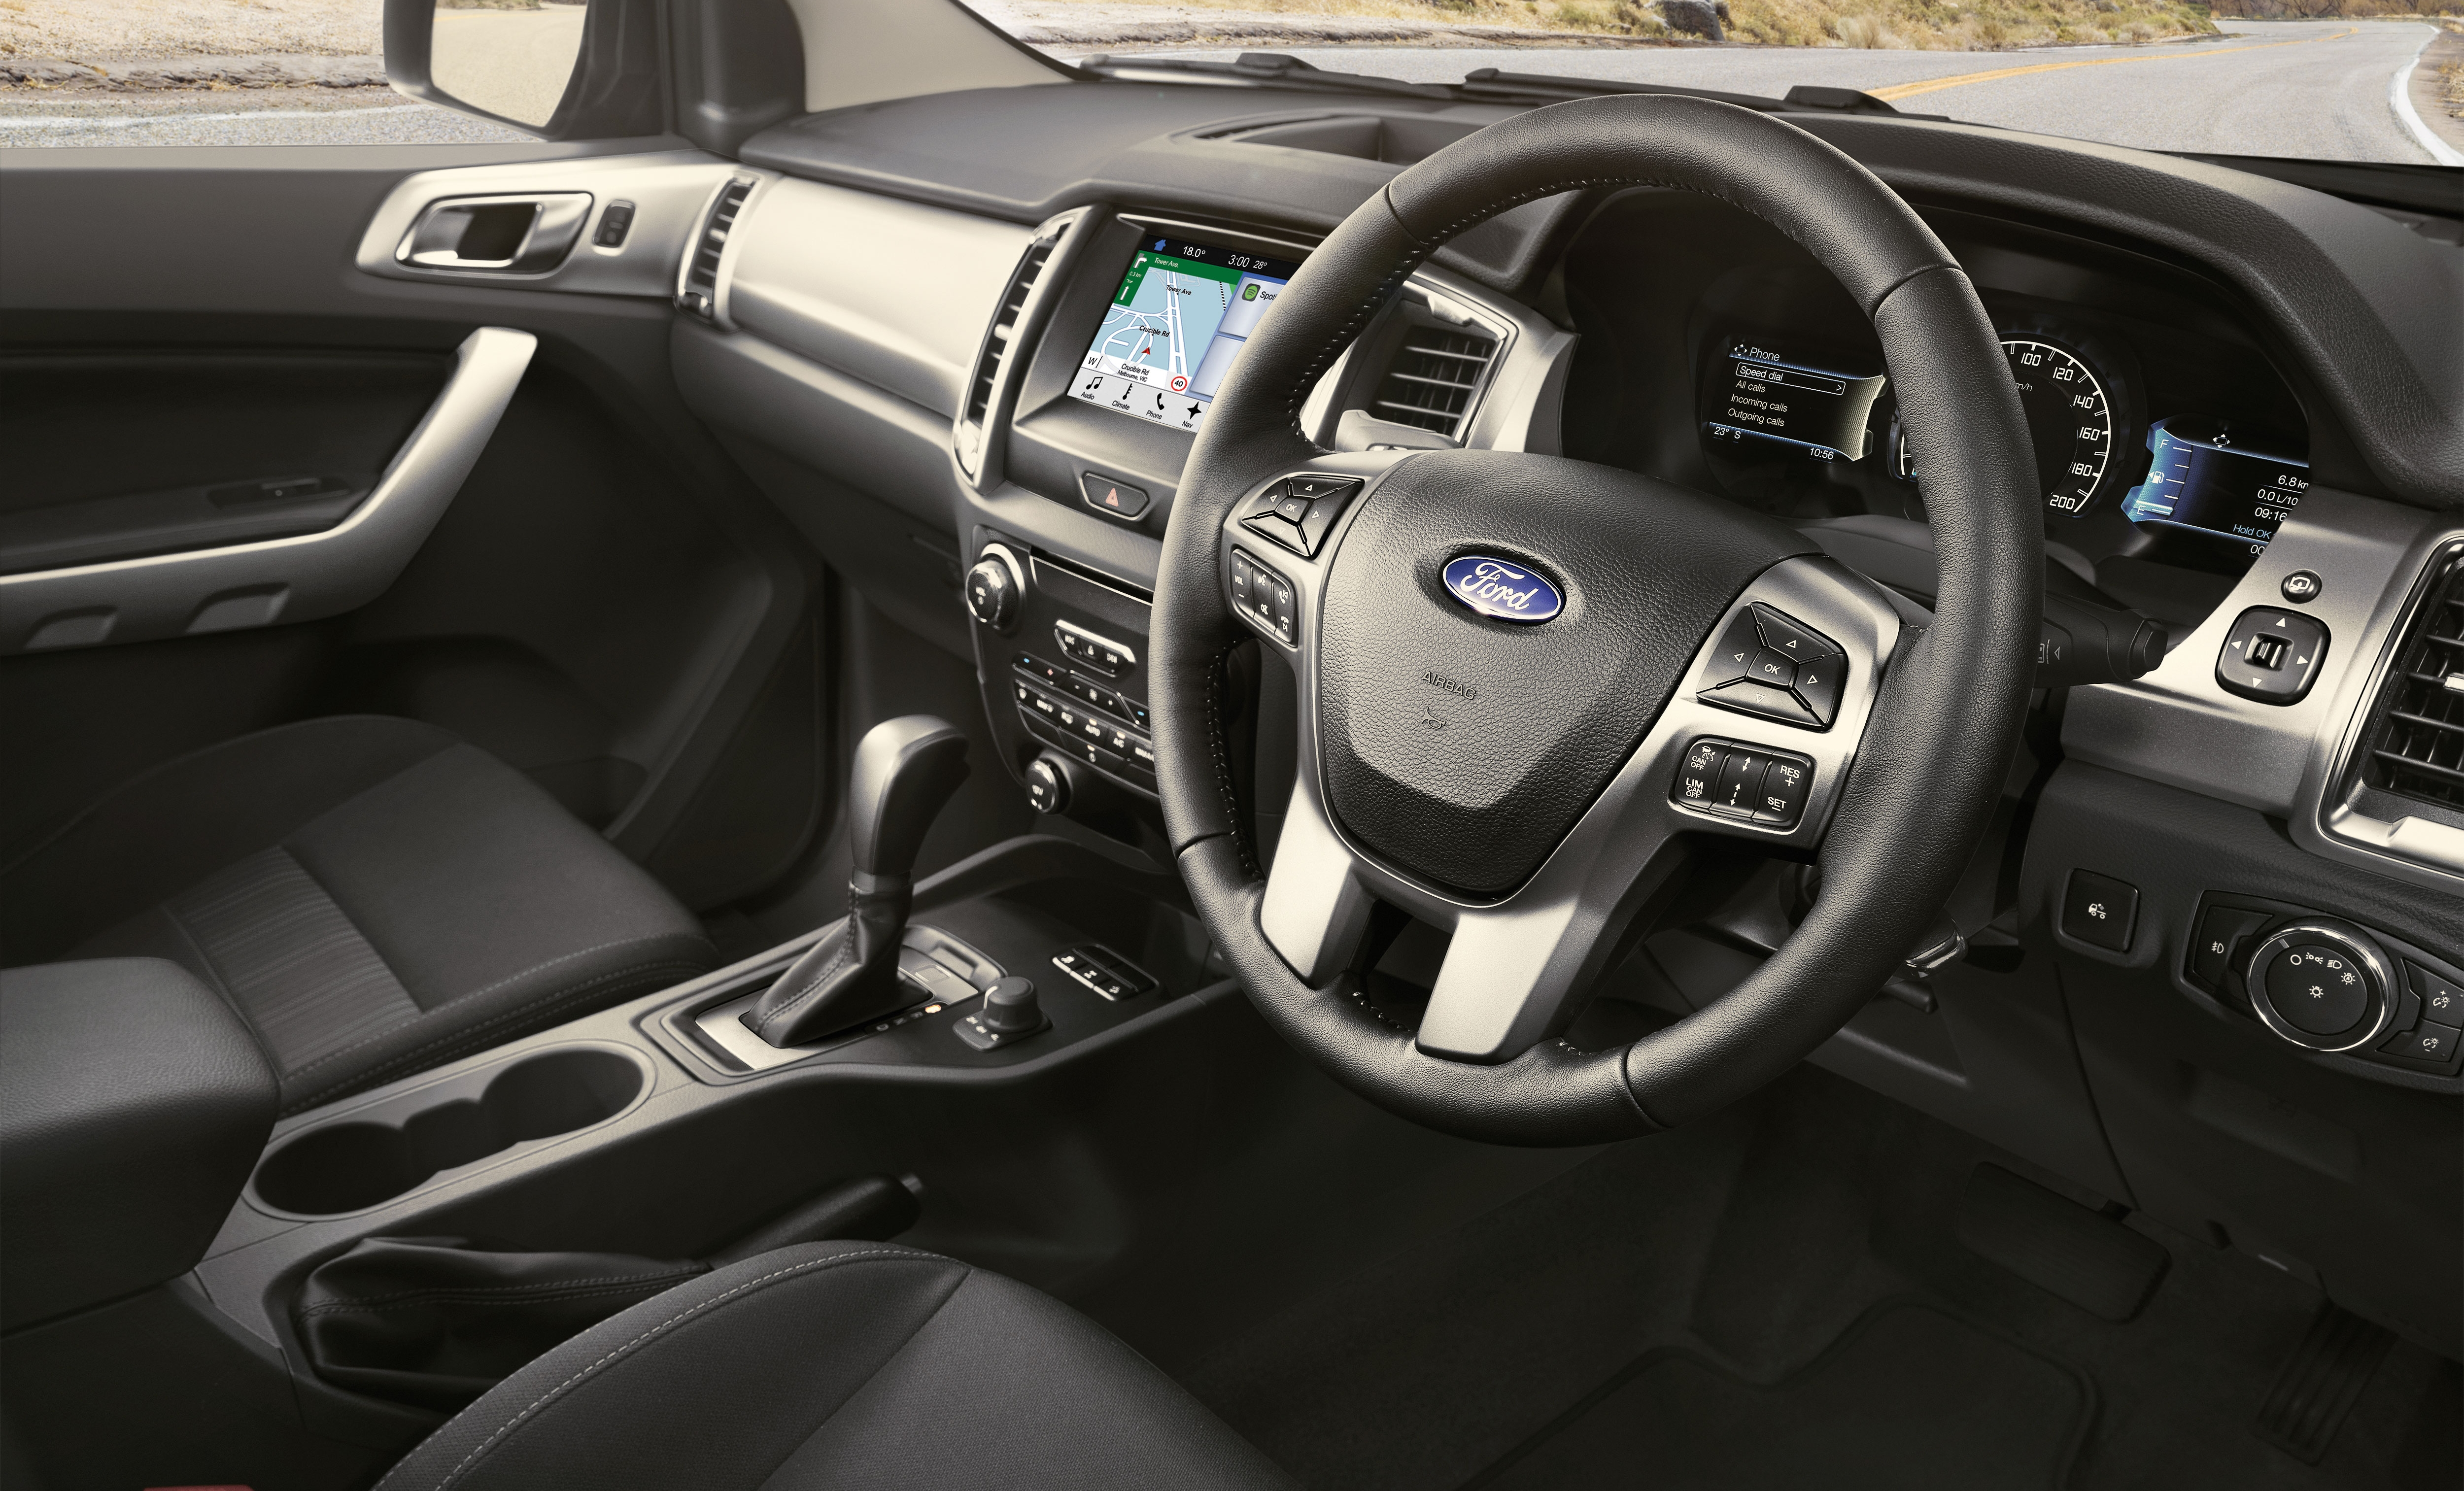 2017 Ford Ranger – Australian update introduces SYNC 3 and new